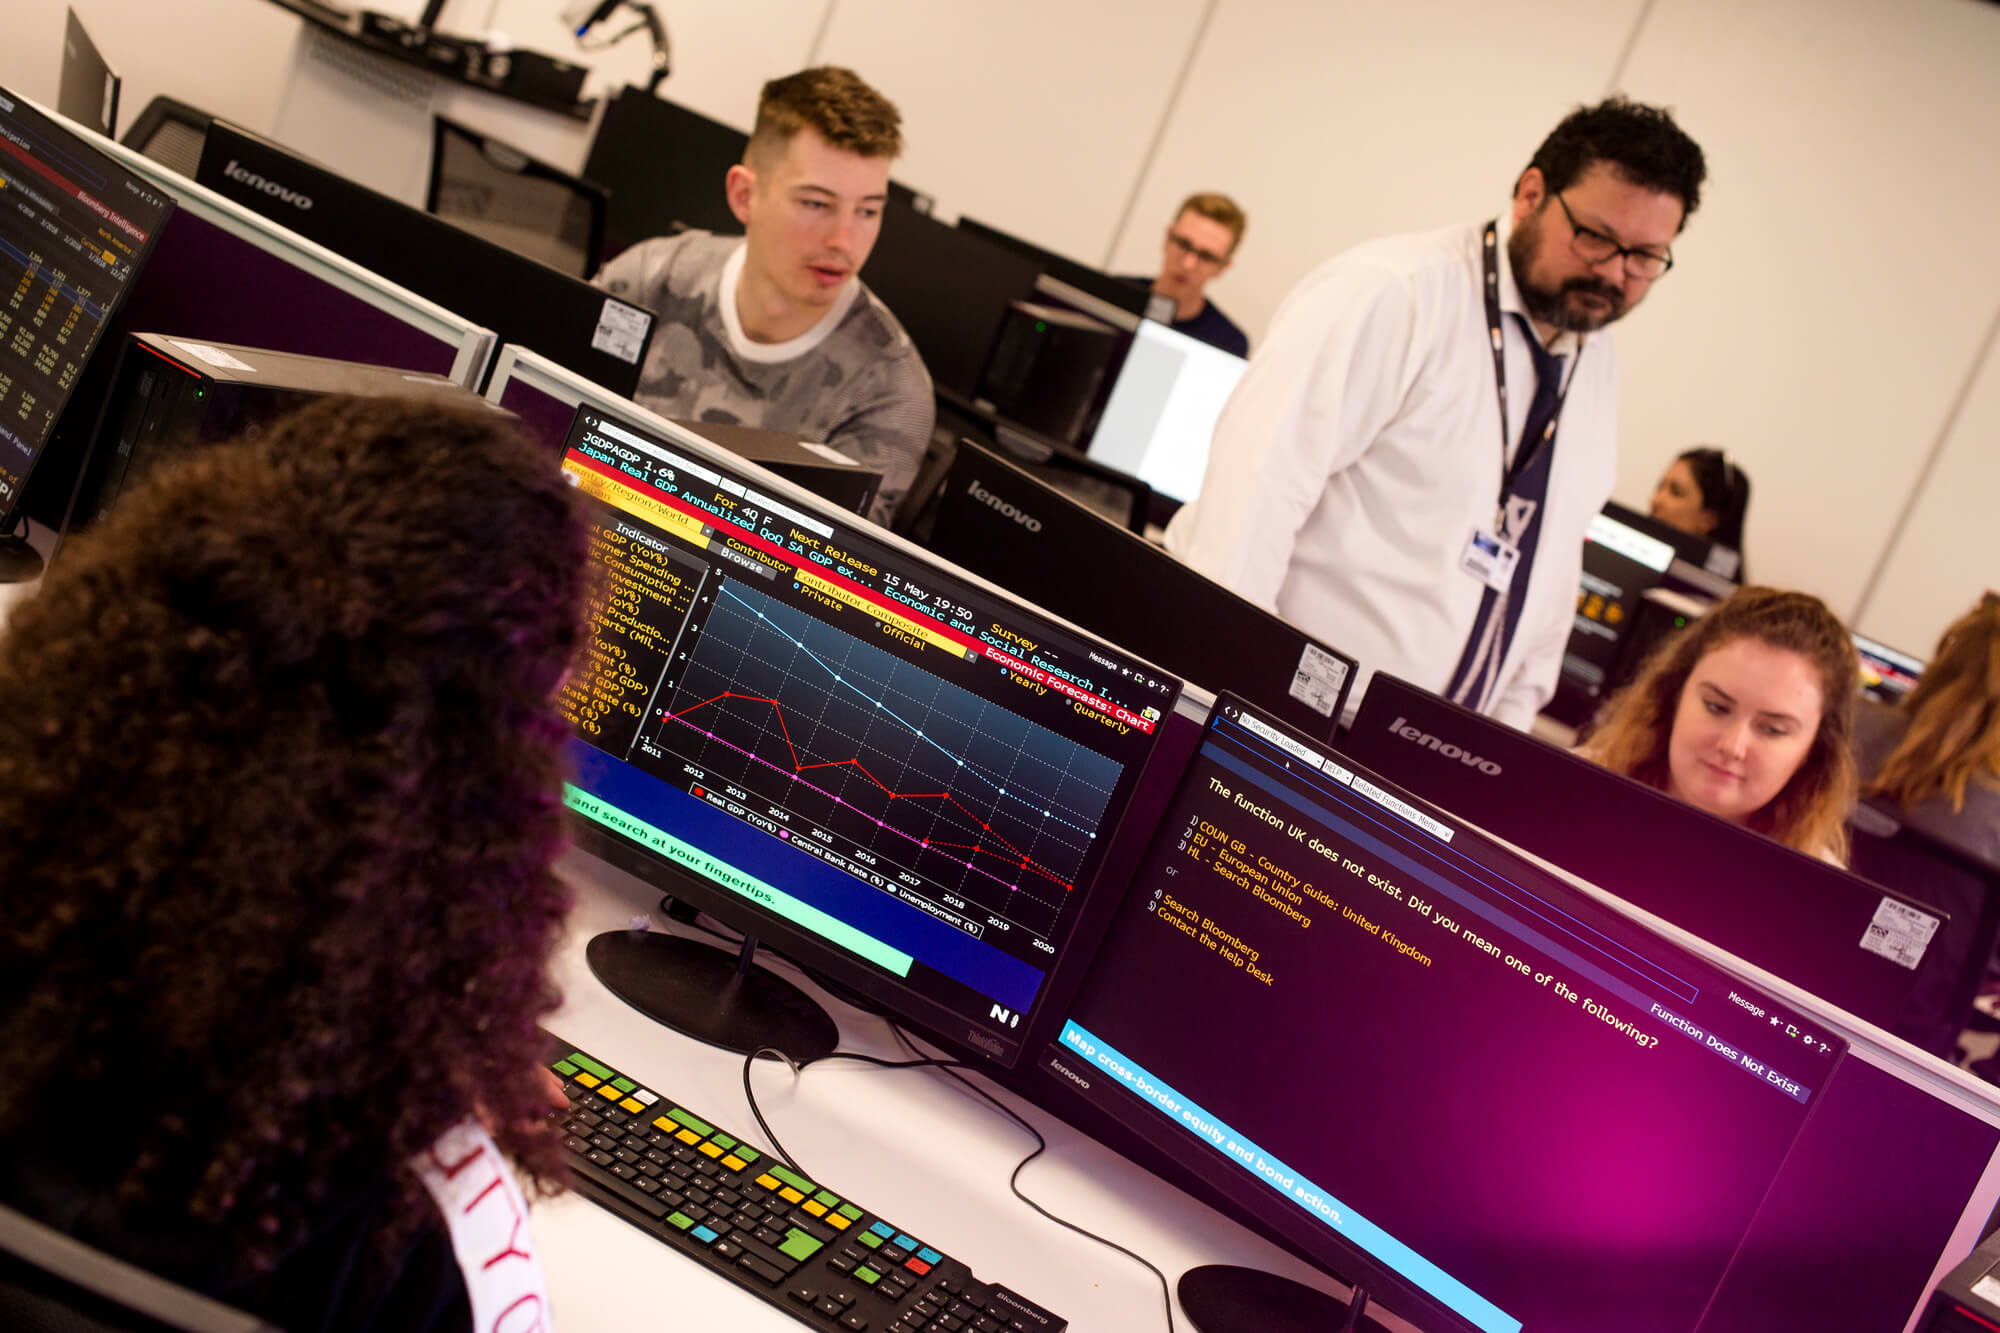 Teaching session in the Bloomberg Trading room